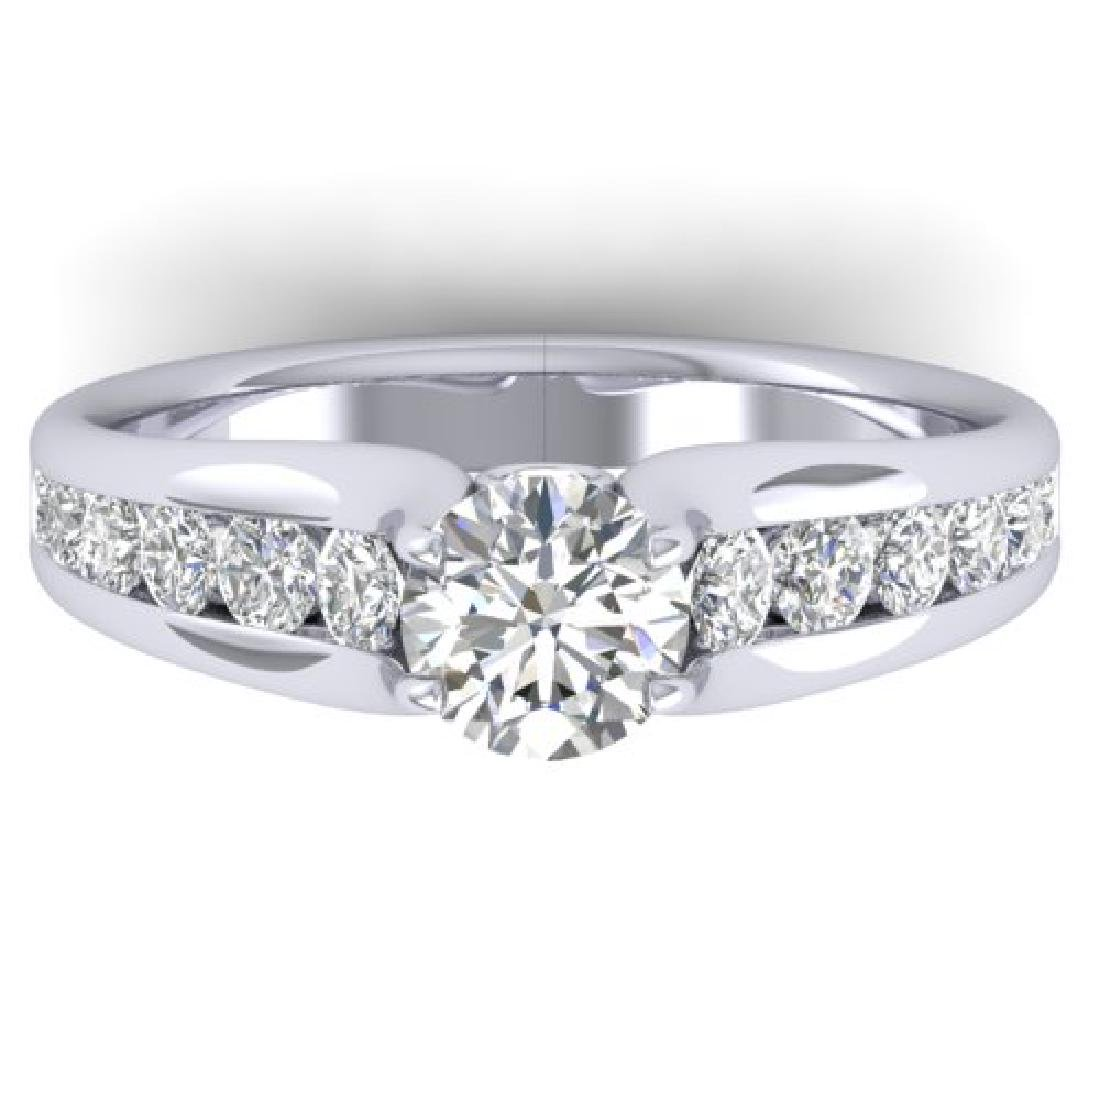 1.37 CTW Certified VS/SI Diamond Solitaire Ring 18K